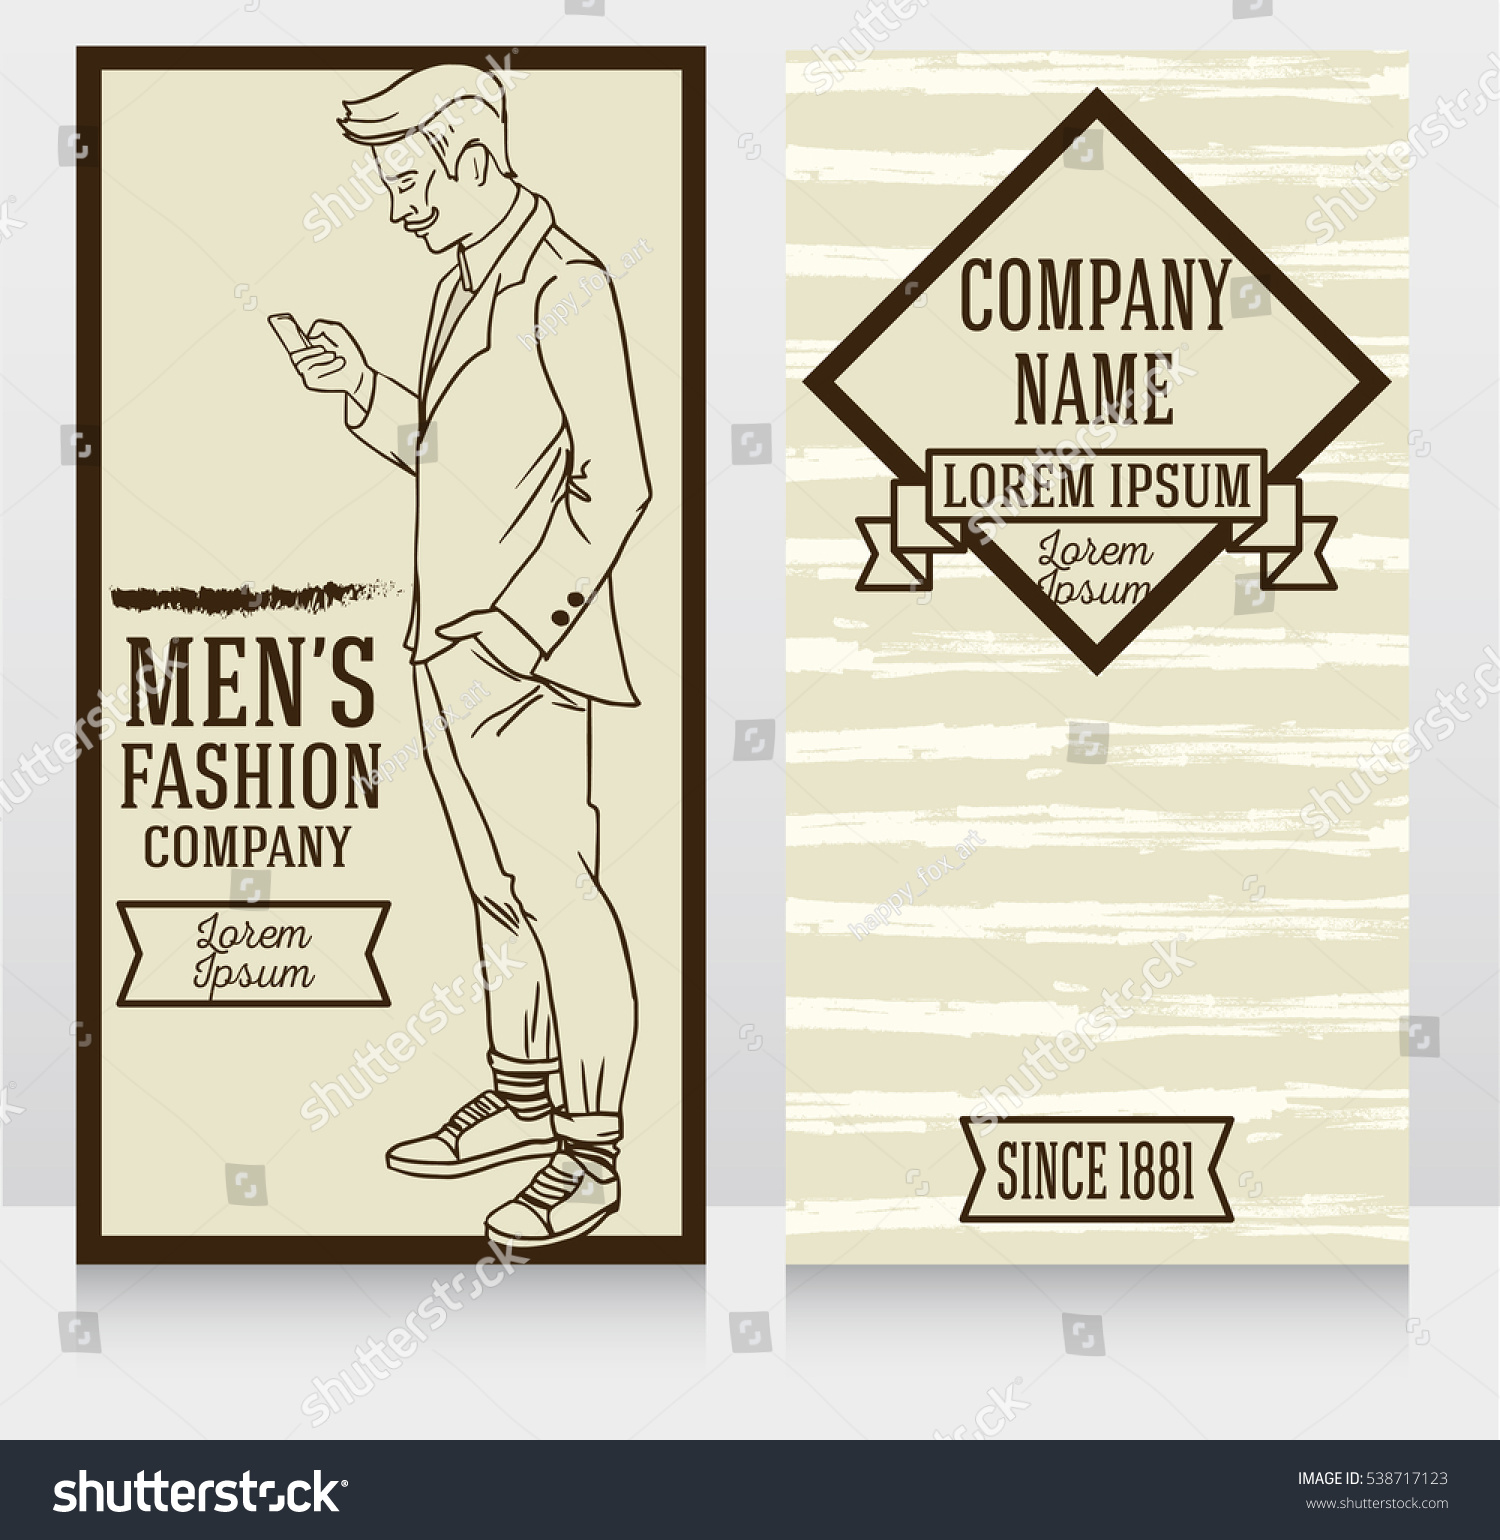 Banner Retro American Style Trendy Hipster Stock Vector 538717123 ...